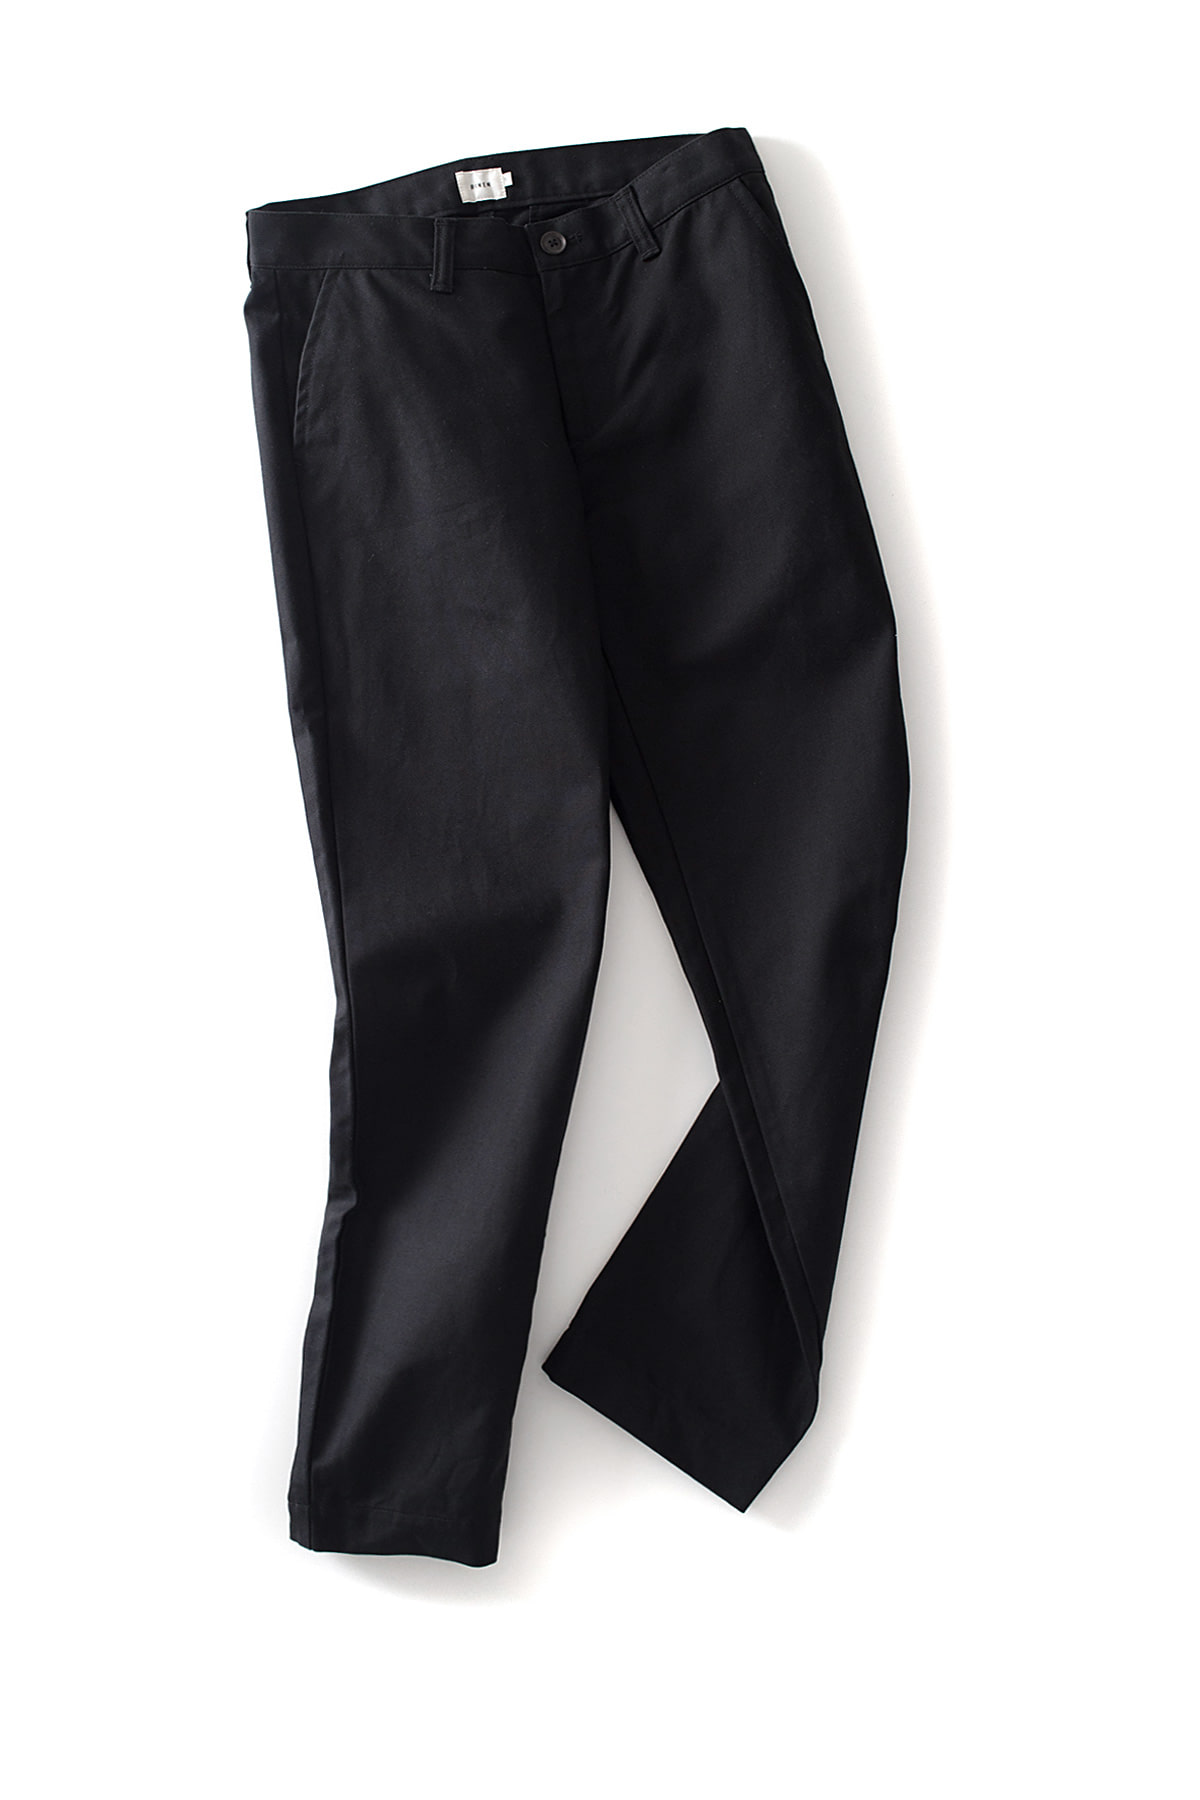 RINEN : Twill Pants (Black)